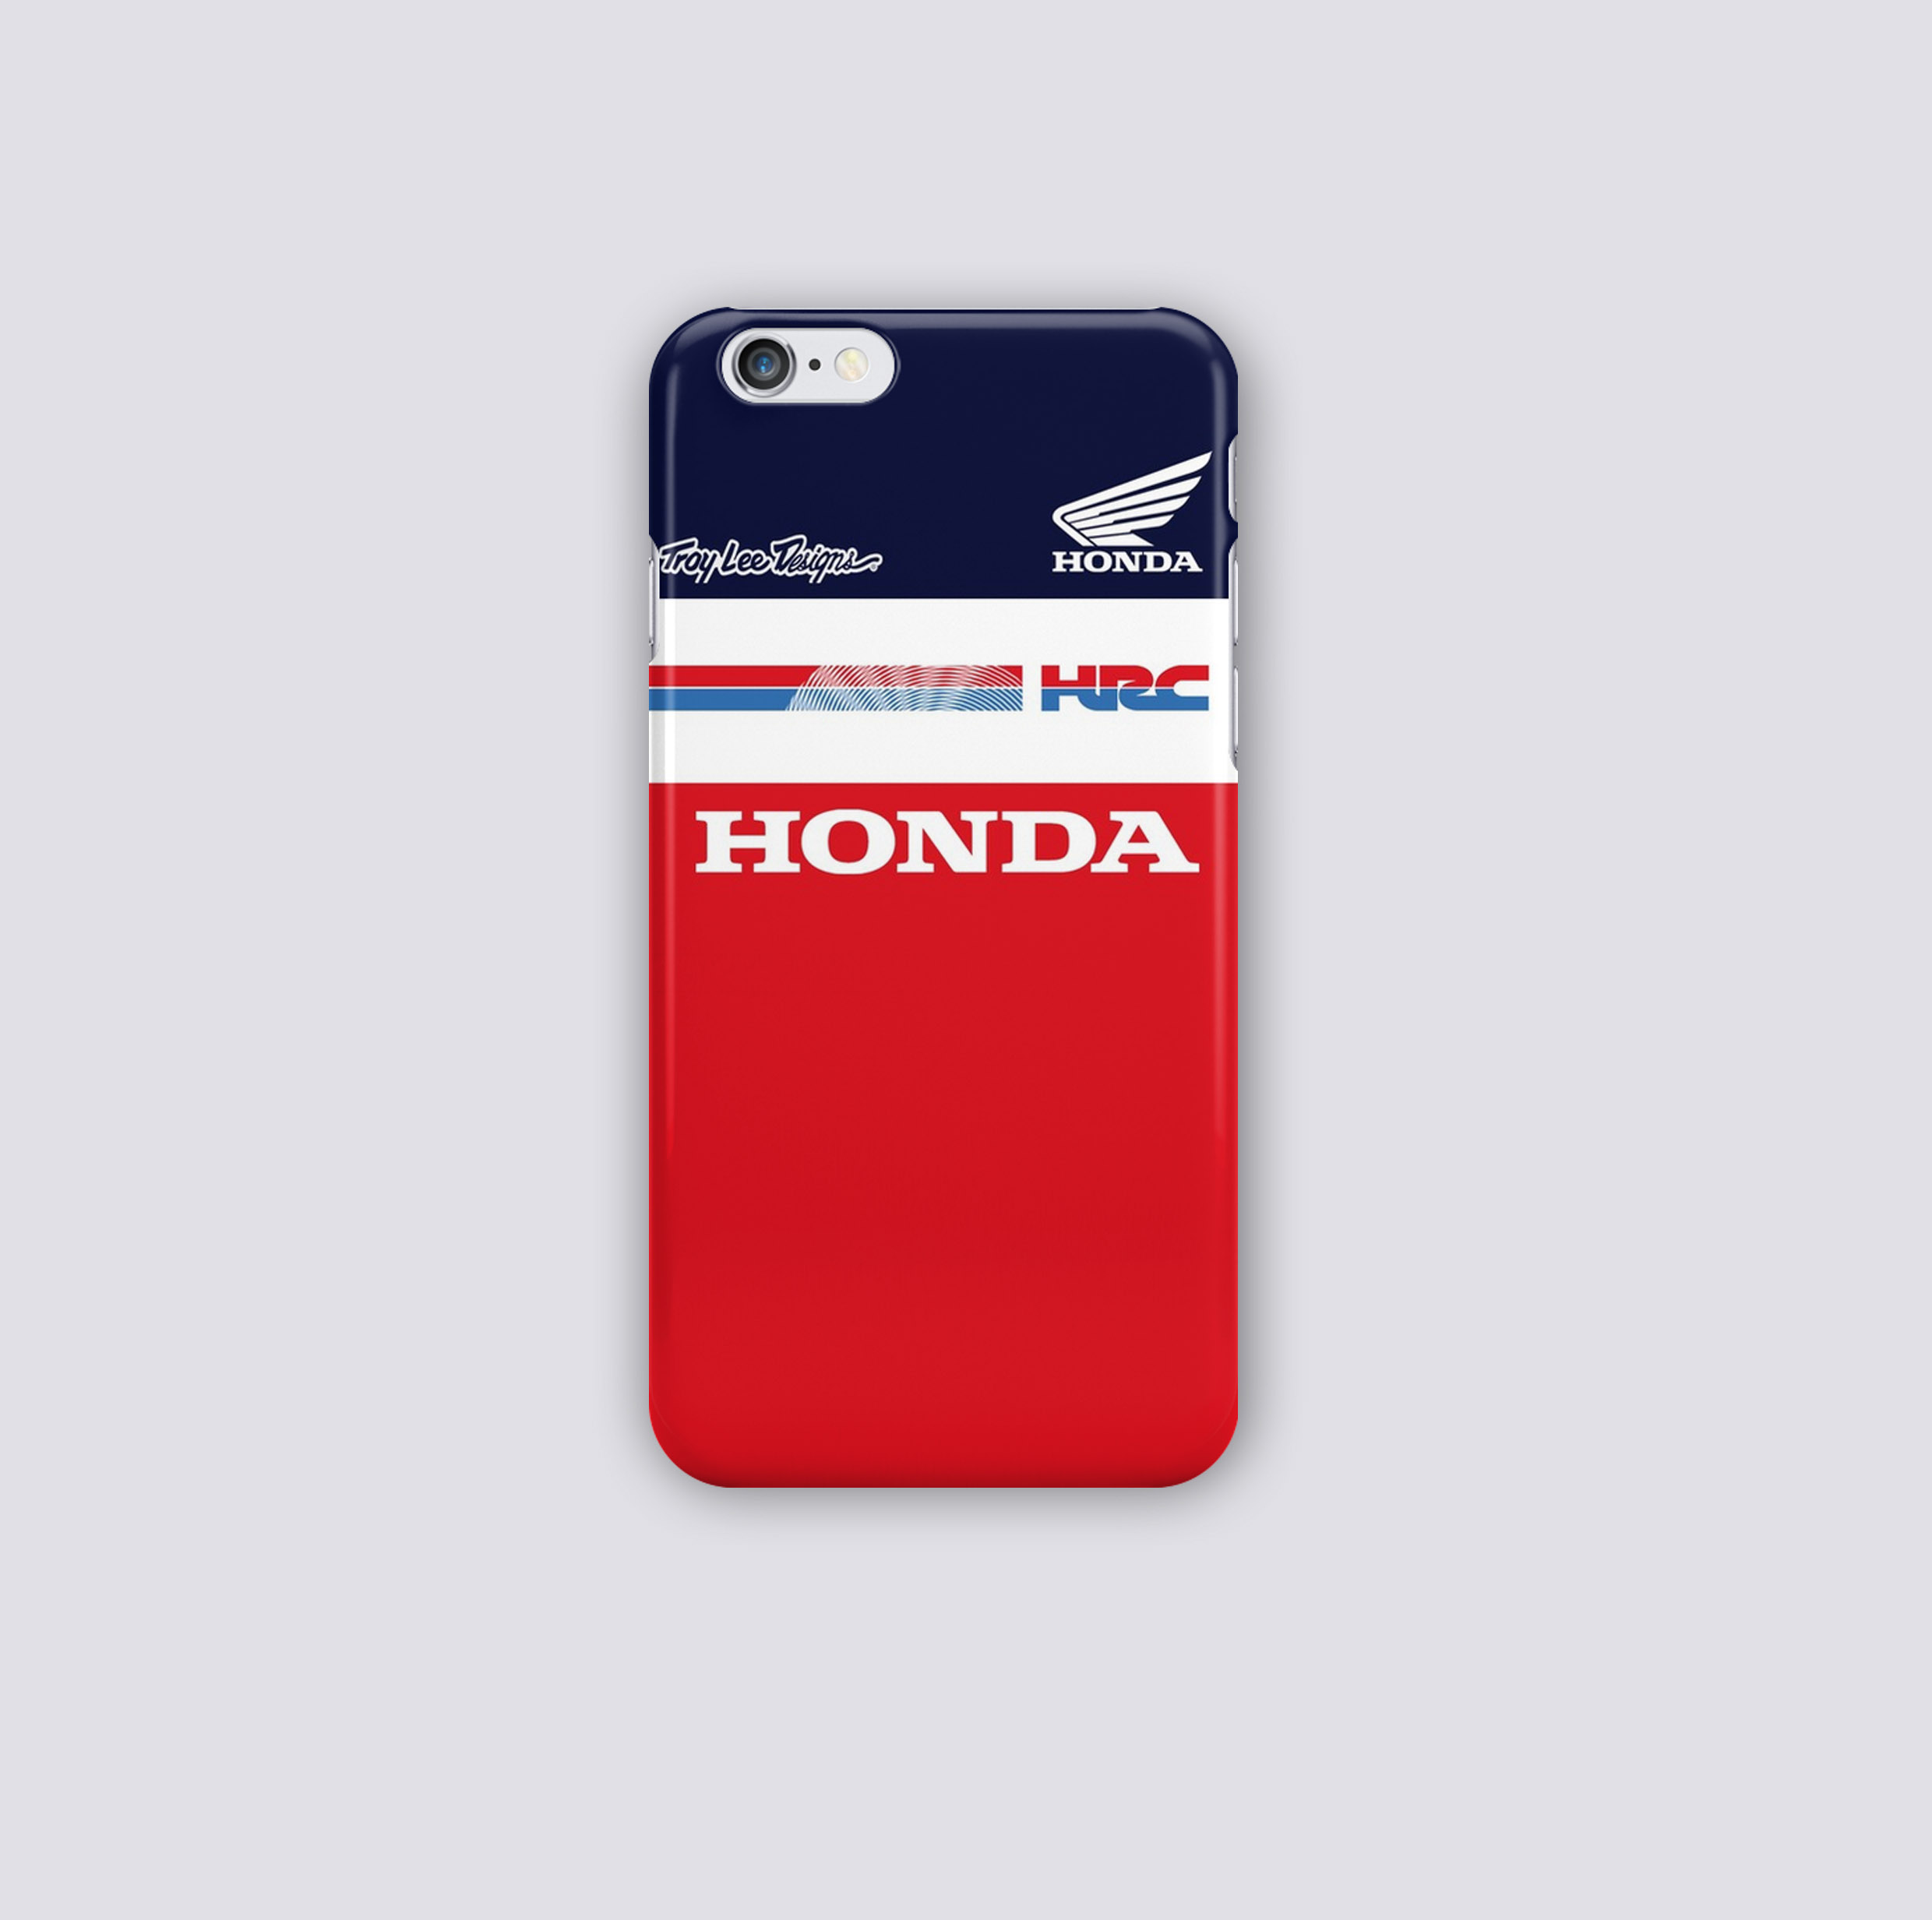 Troy Lee Designs Team Honda Hrc Iphone And Samsung Cases Heryu